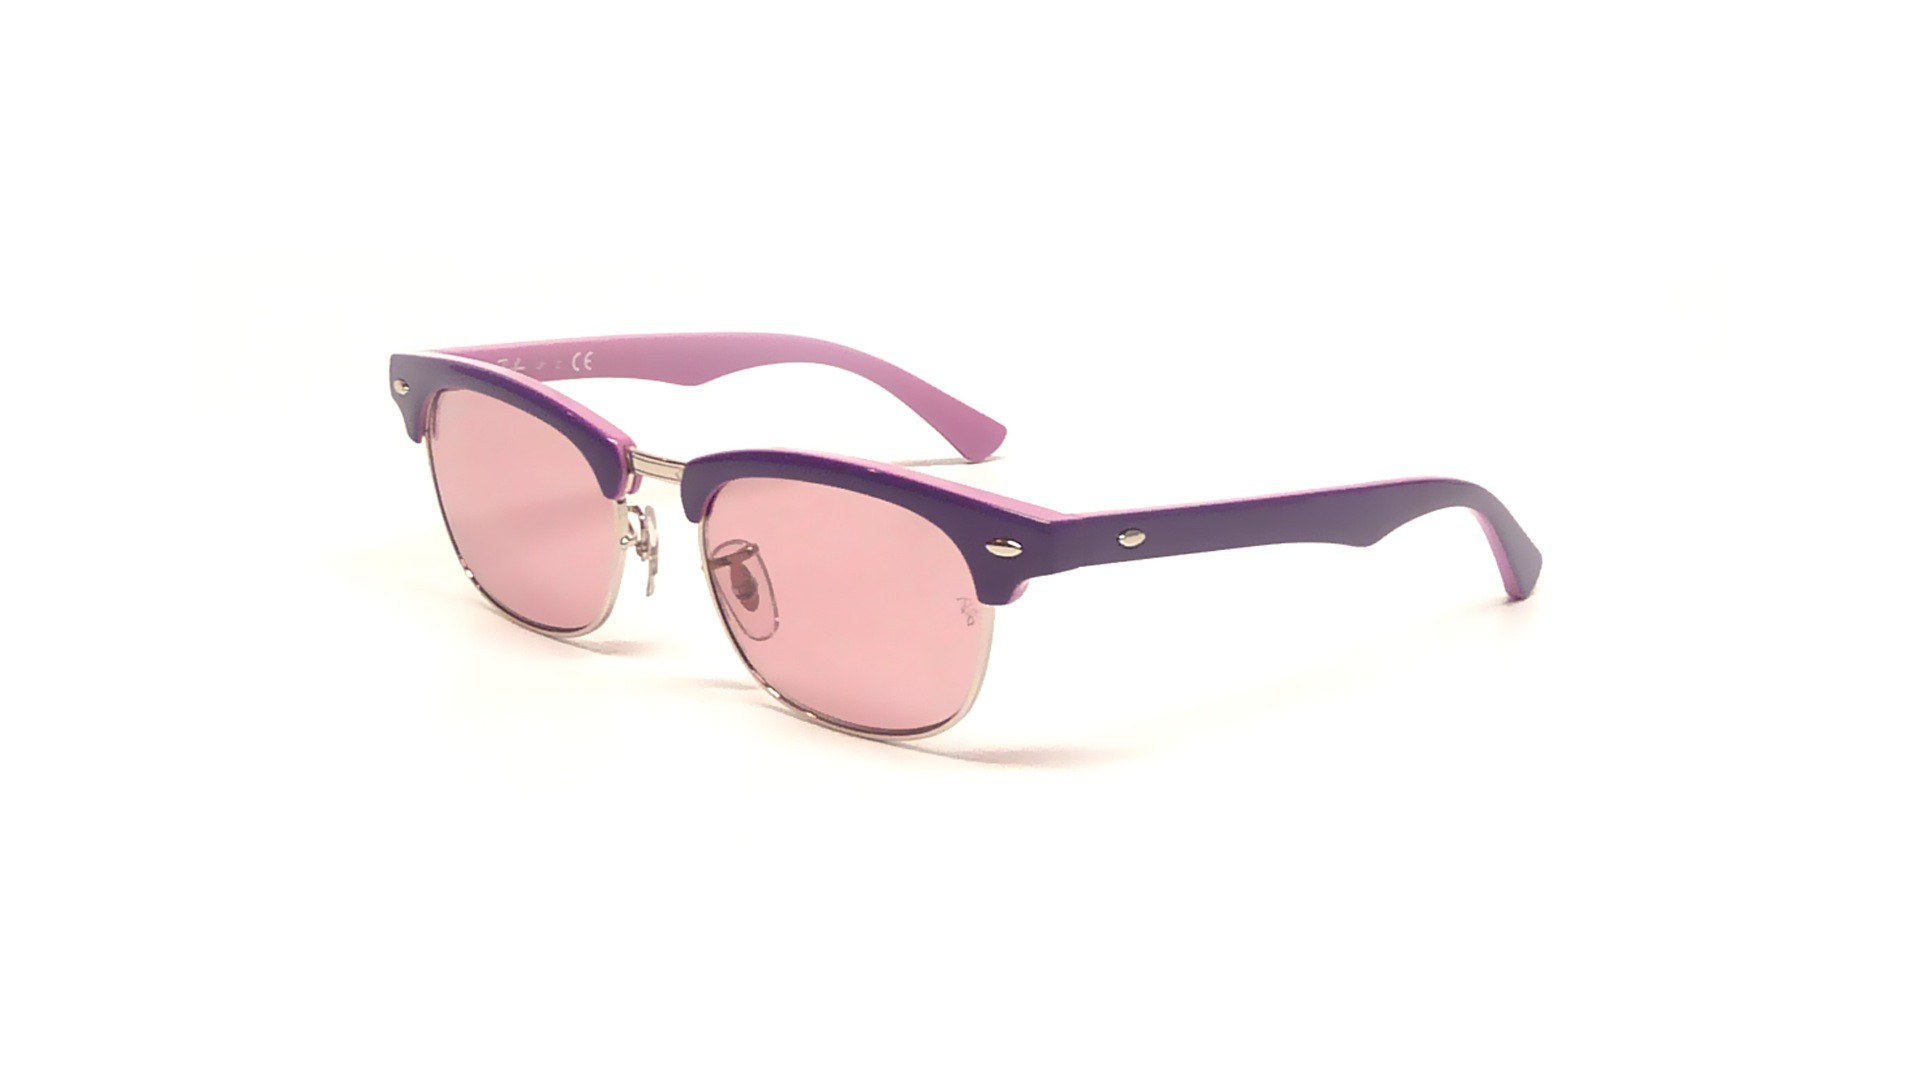 50fa6aef7a463b ... official store ray ban clubmaster purple rj9050s 179 7e 45 16  visiofactory bb4ad 597e8 ...